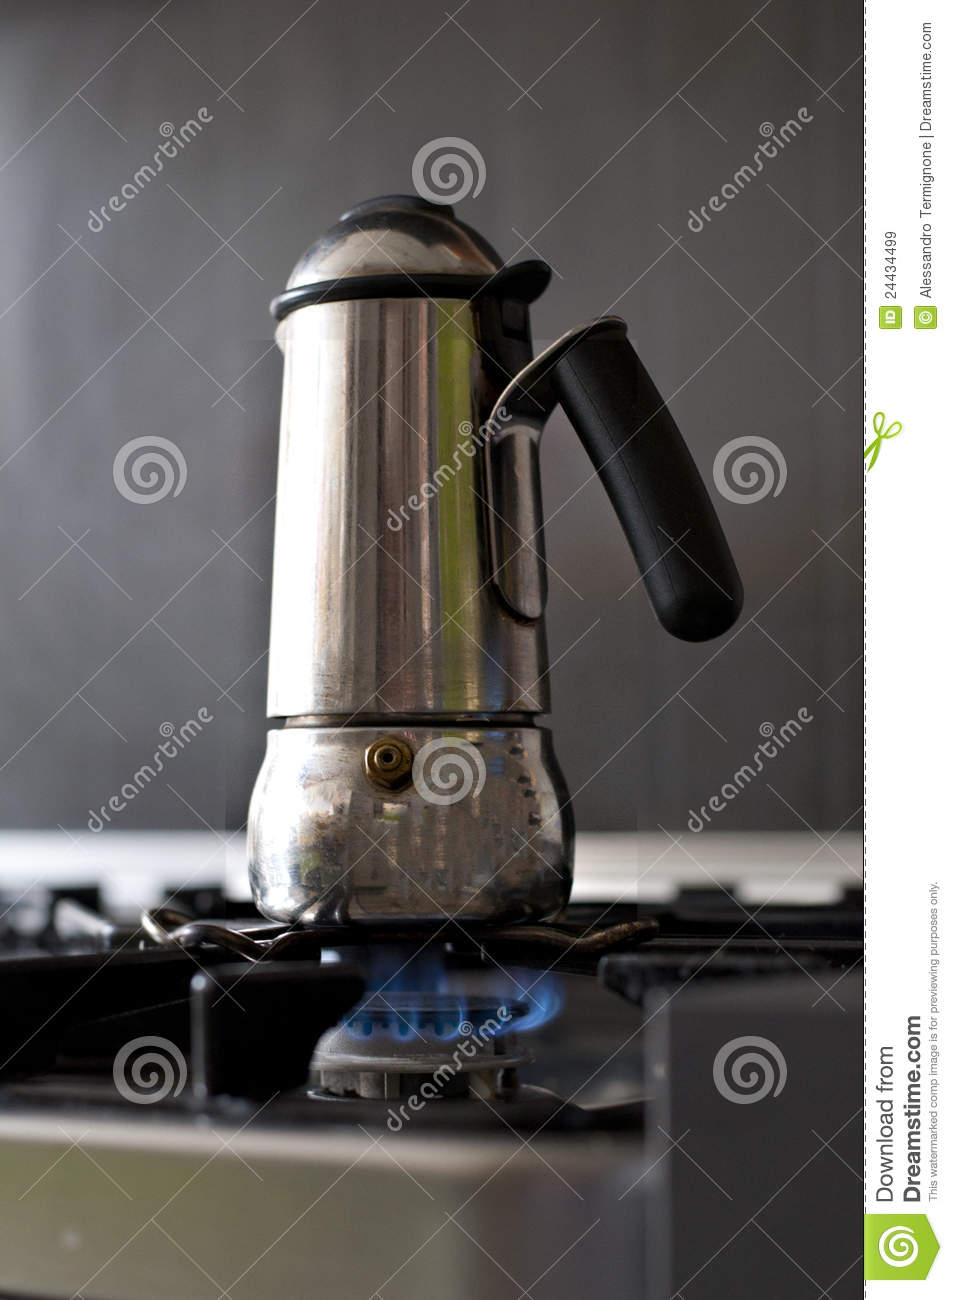 Map Italian Coffee Maker : Italian Coffee Maker Royalty Free Stock Images - Image: 24434499